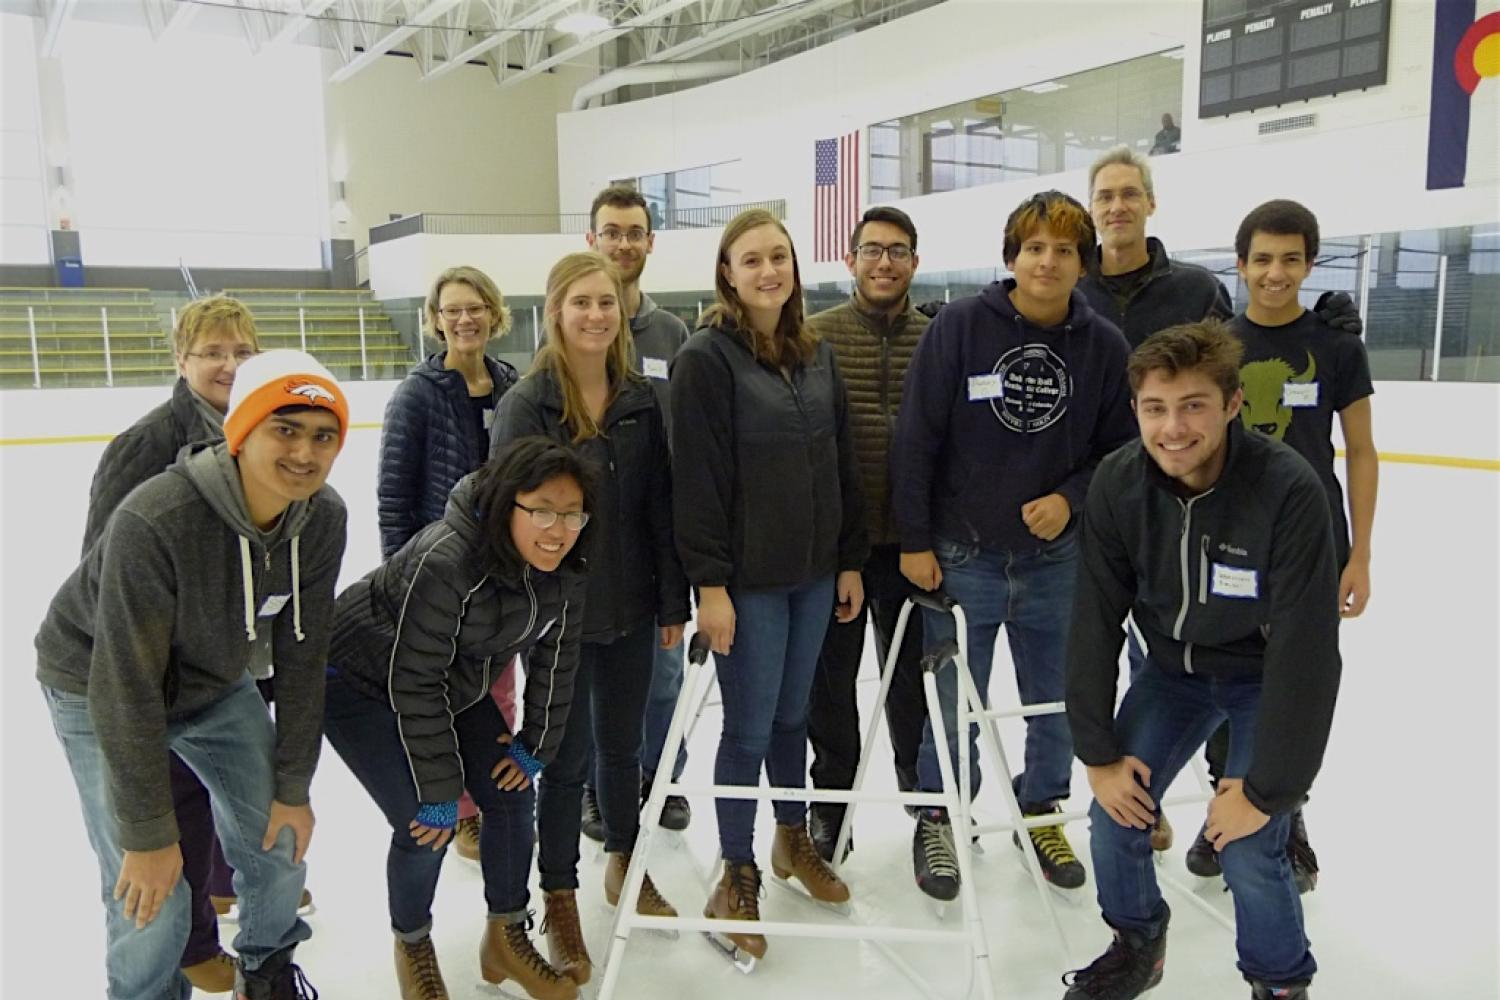 2018 Spring Welcome Back ice skating